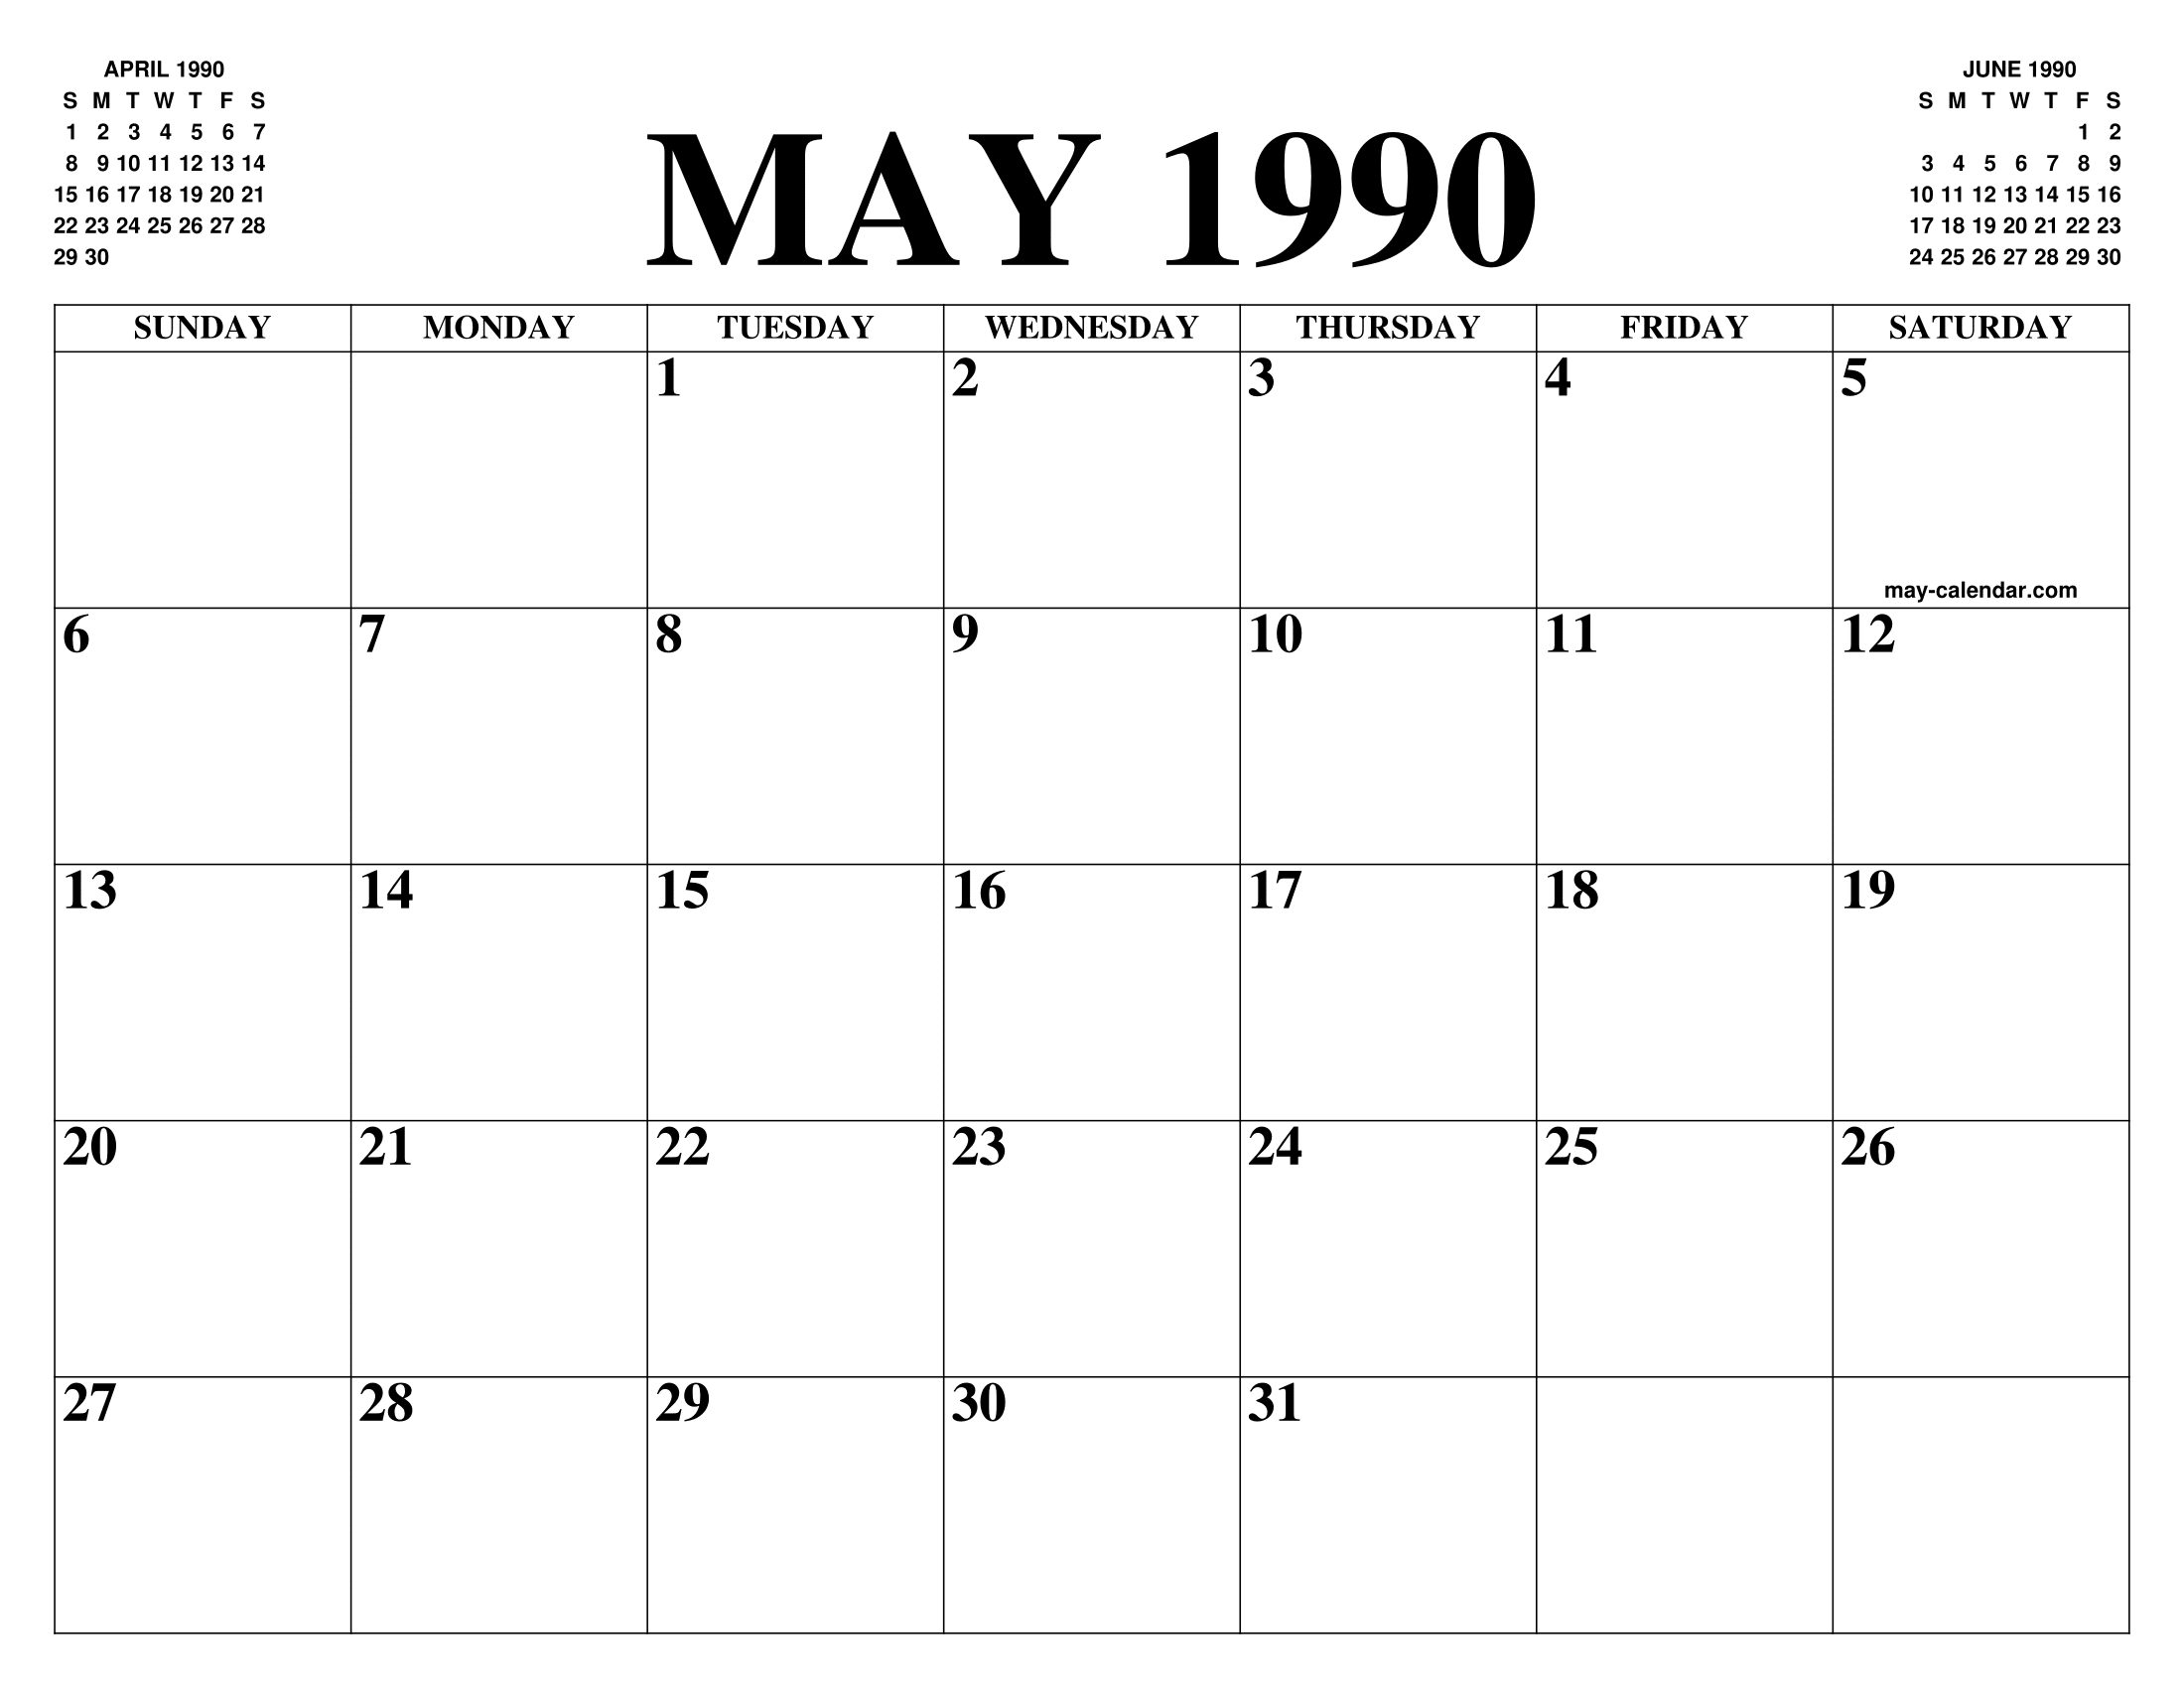 1990 Calendar.May 1990 Calendar Of The Month Free Printable May Calendar Of The